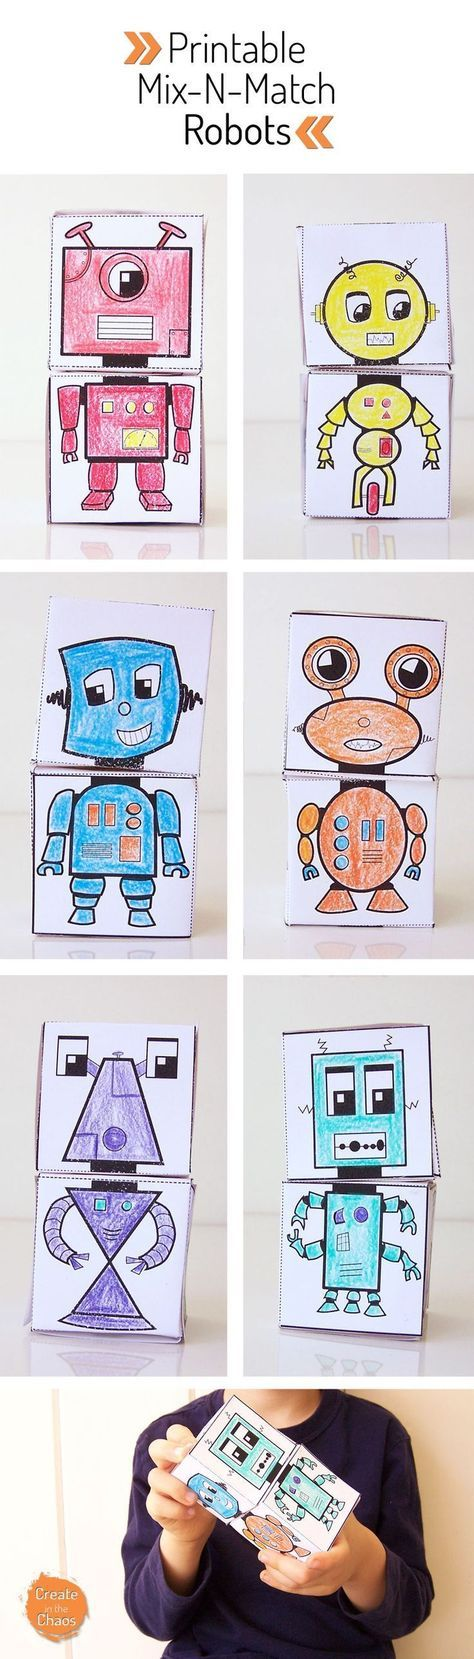 Free printable mix-n-match robot blocks - fun and easy kids craft! www.createinthech...